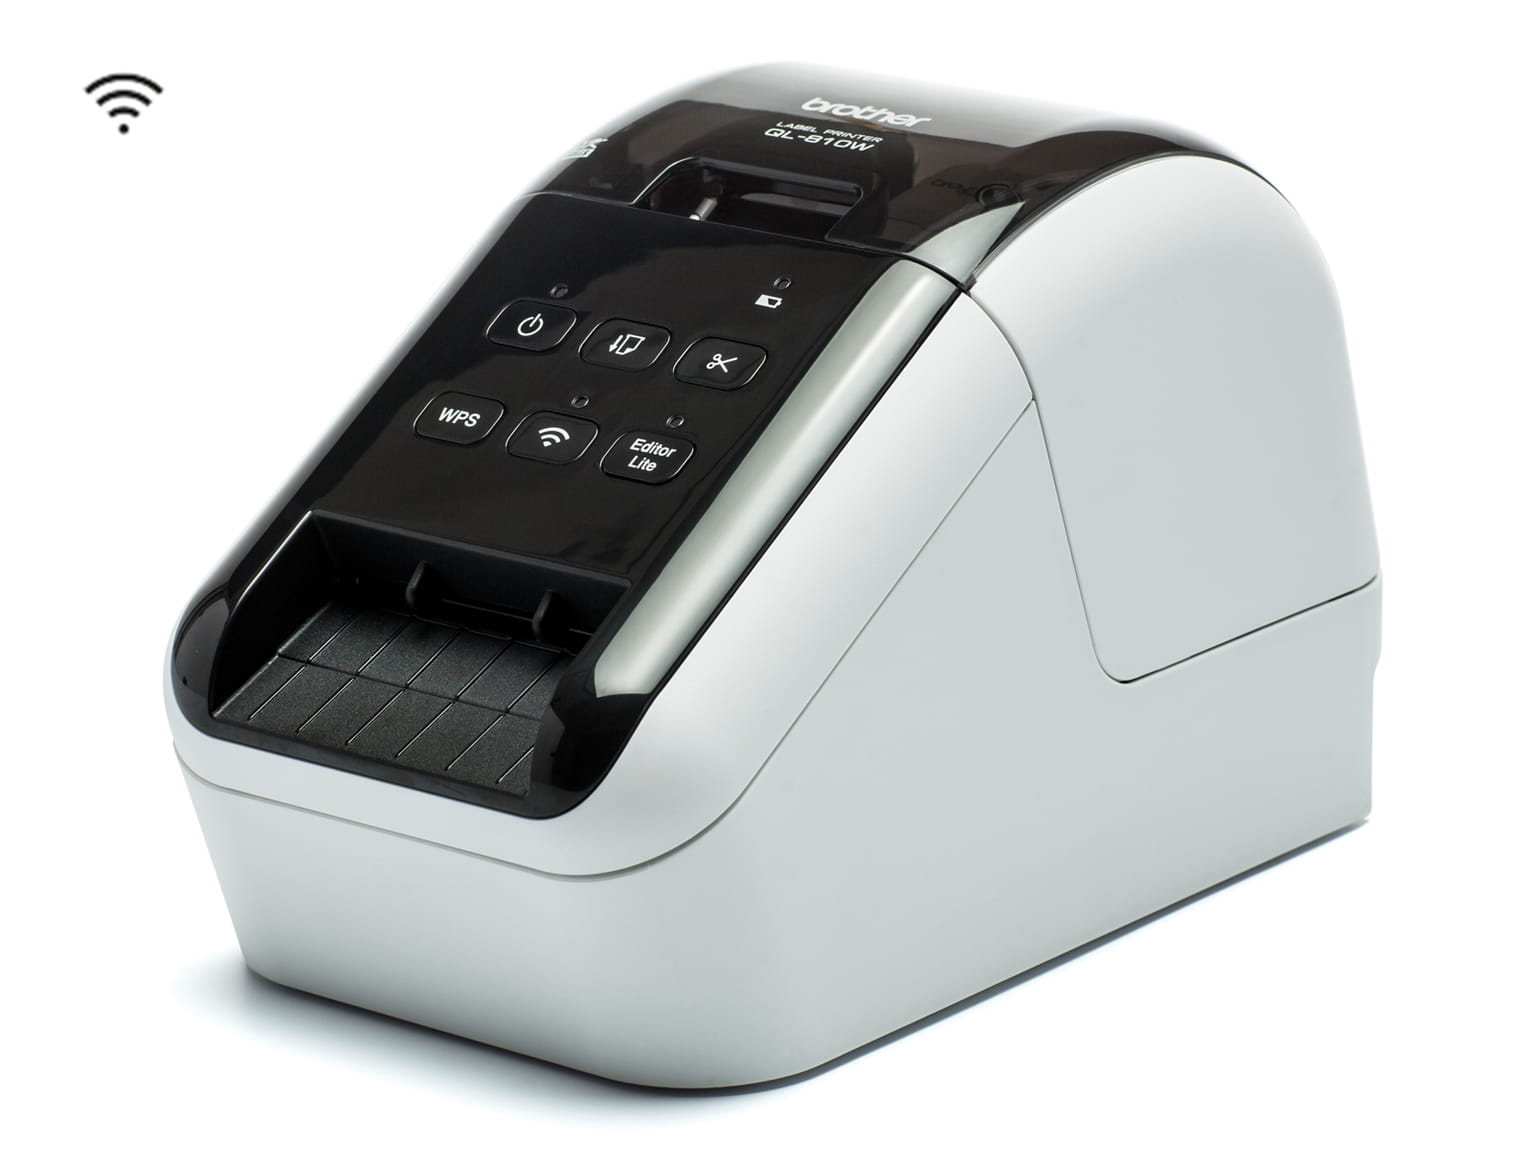 QL-810W Brother Label Printer